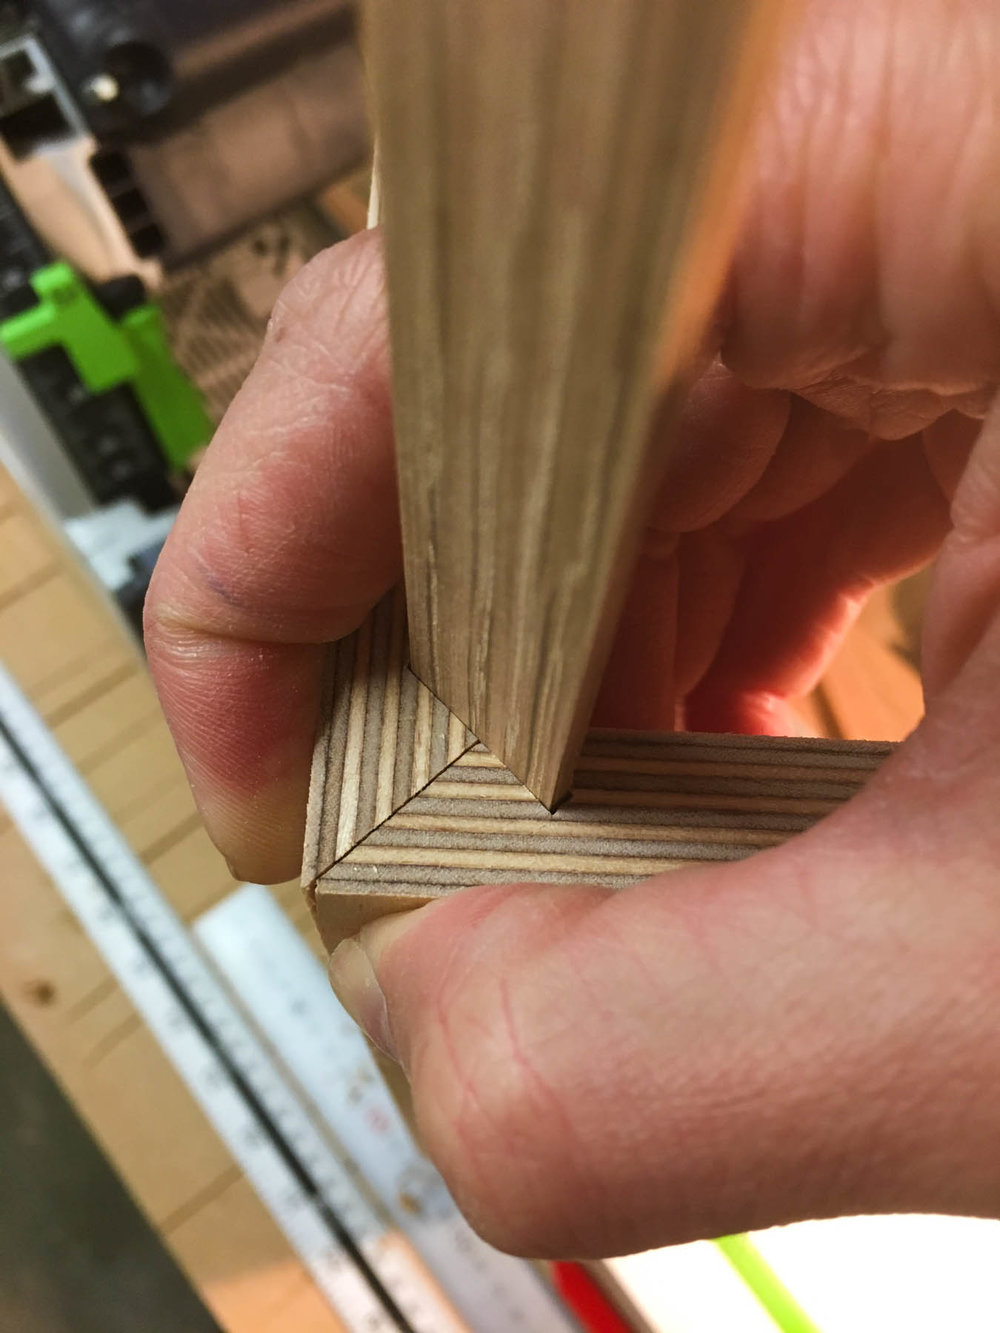 Mitres and splines